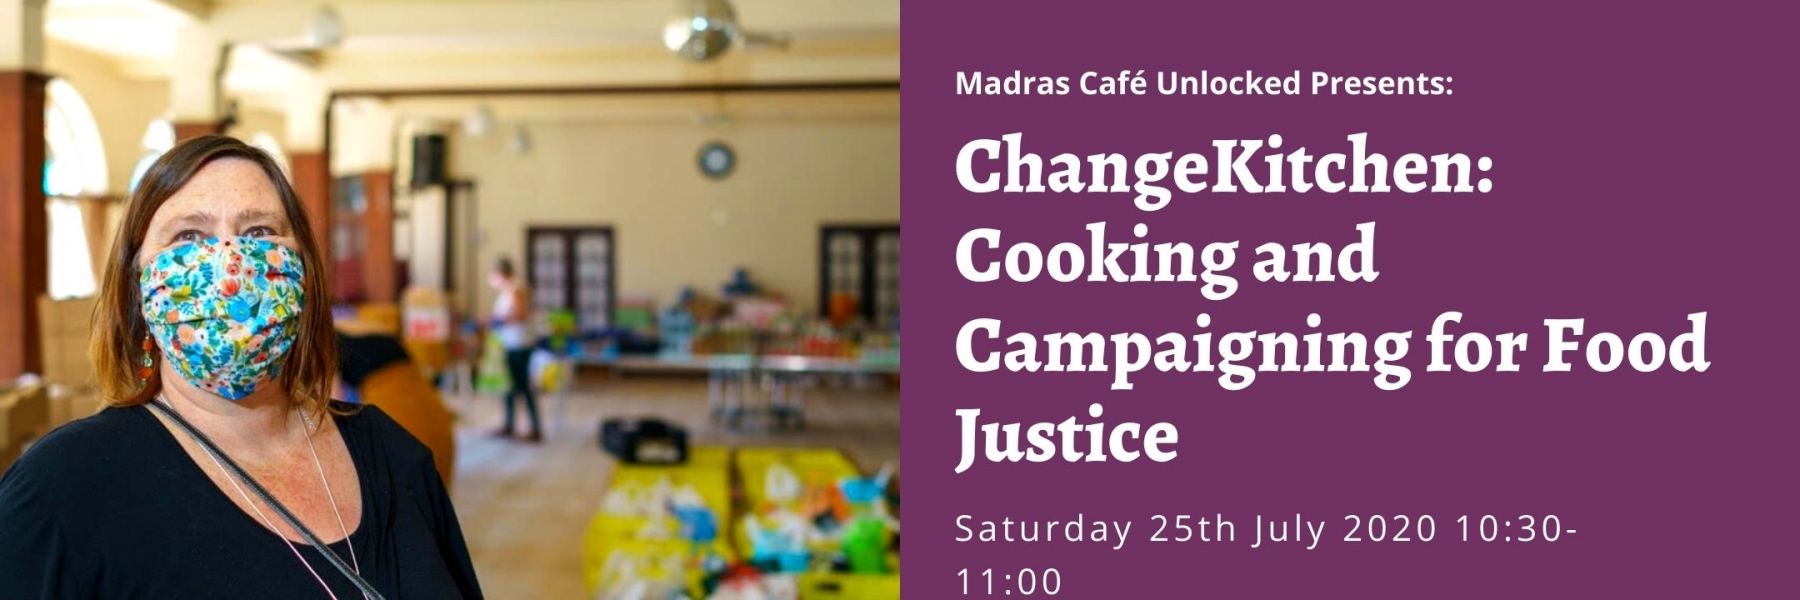 Madras Cafe Unlocked 2020: ChangeKitchen: cooking and Campaigning for Food Justice